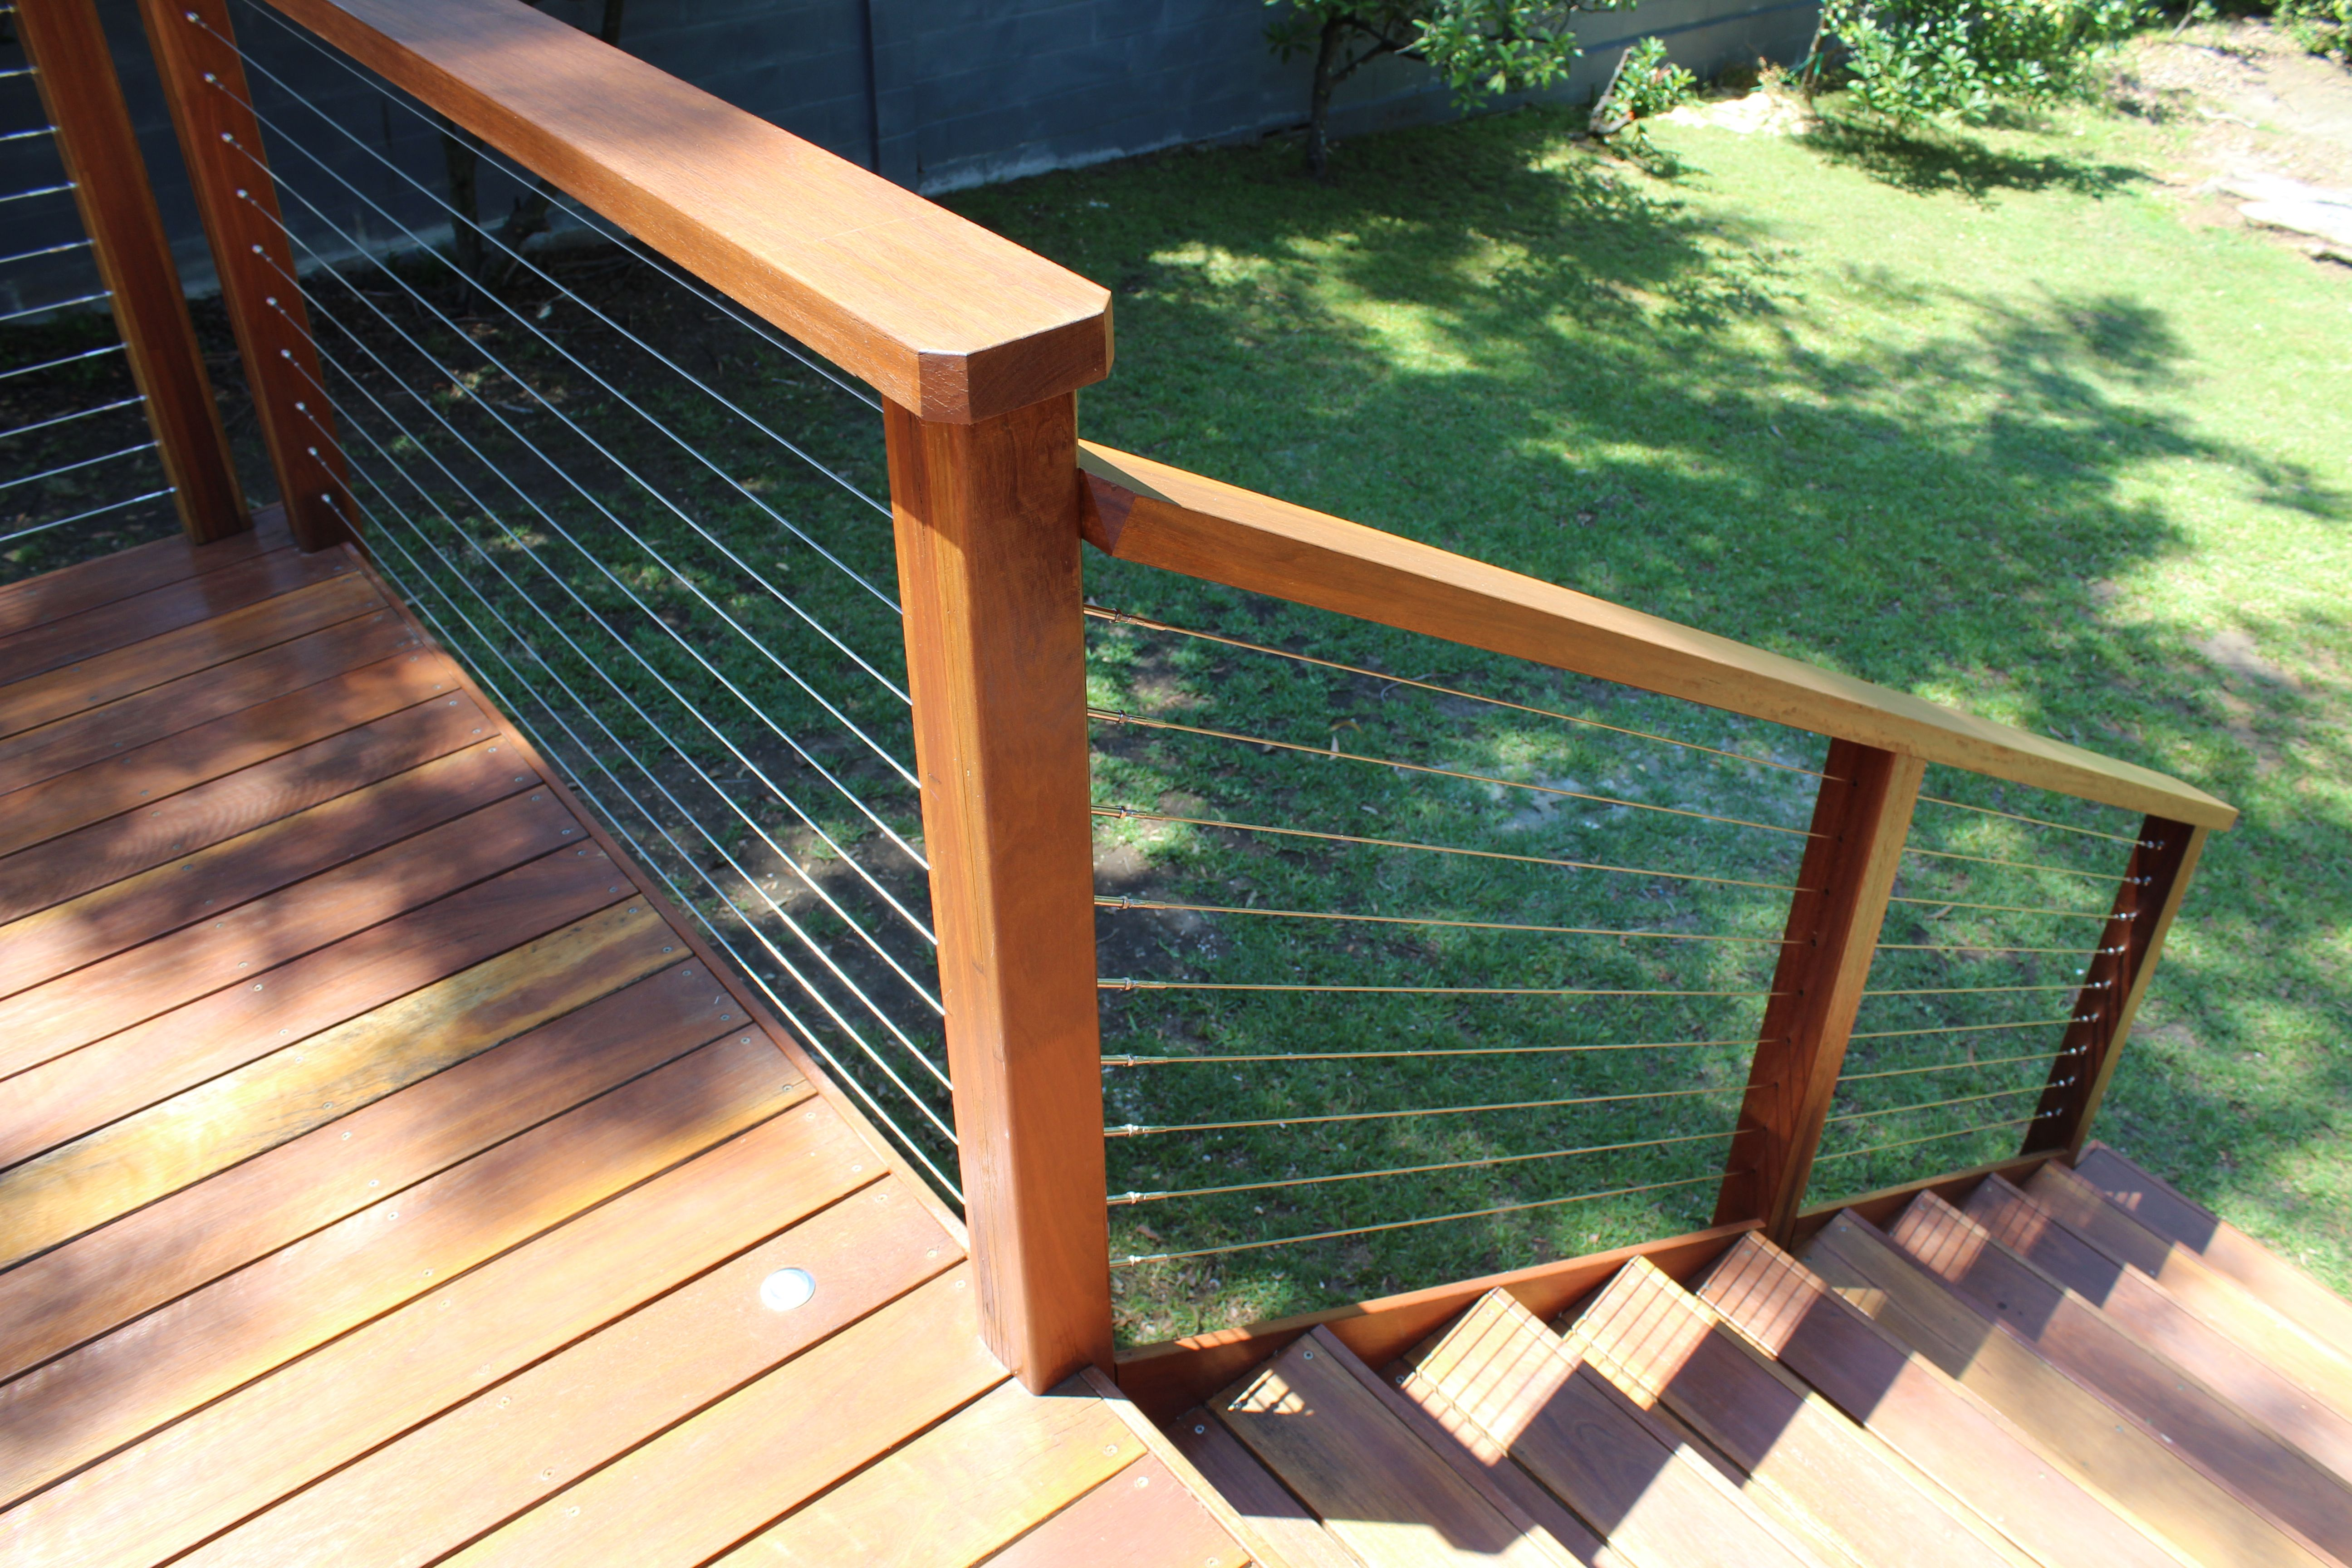 Harwood Balustrade With Stainless Steel Tension Wires Railings | Tension Wire Stair Railing | Stainless Steel | Simple | Aluminum Commercial | Residential | Wire Balustrade